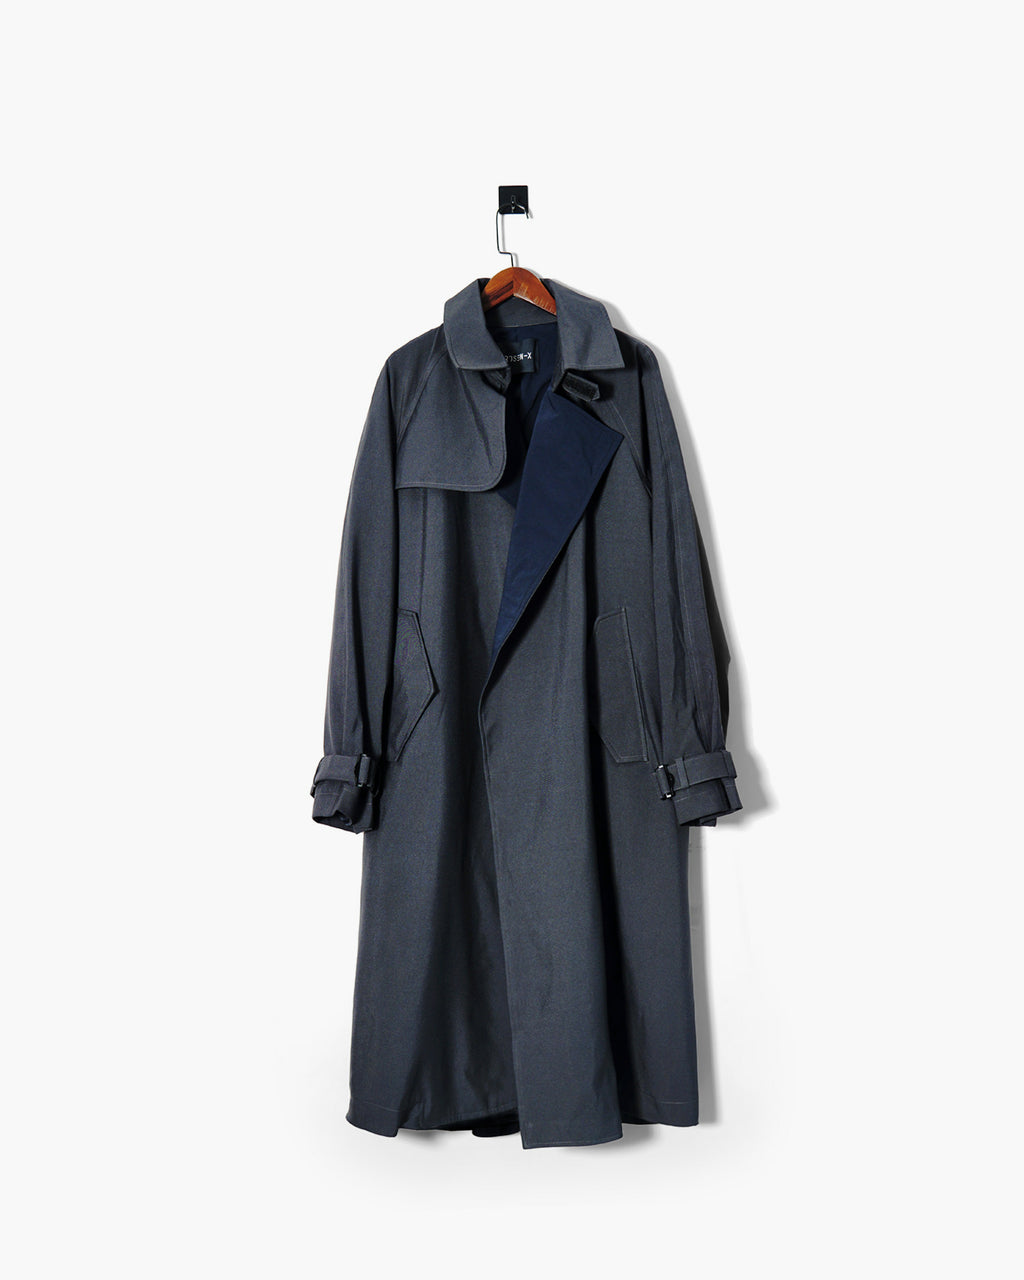 ROSEN-X Atlas Coat Sz 2